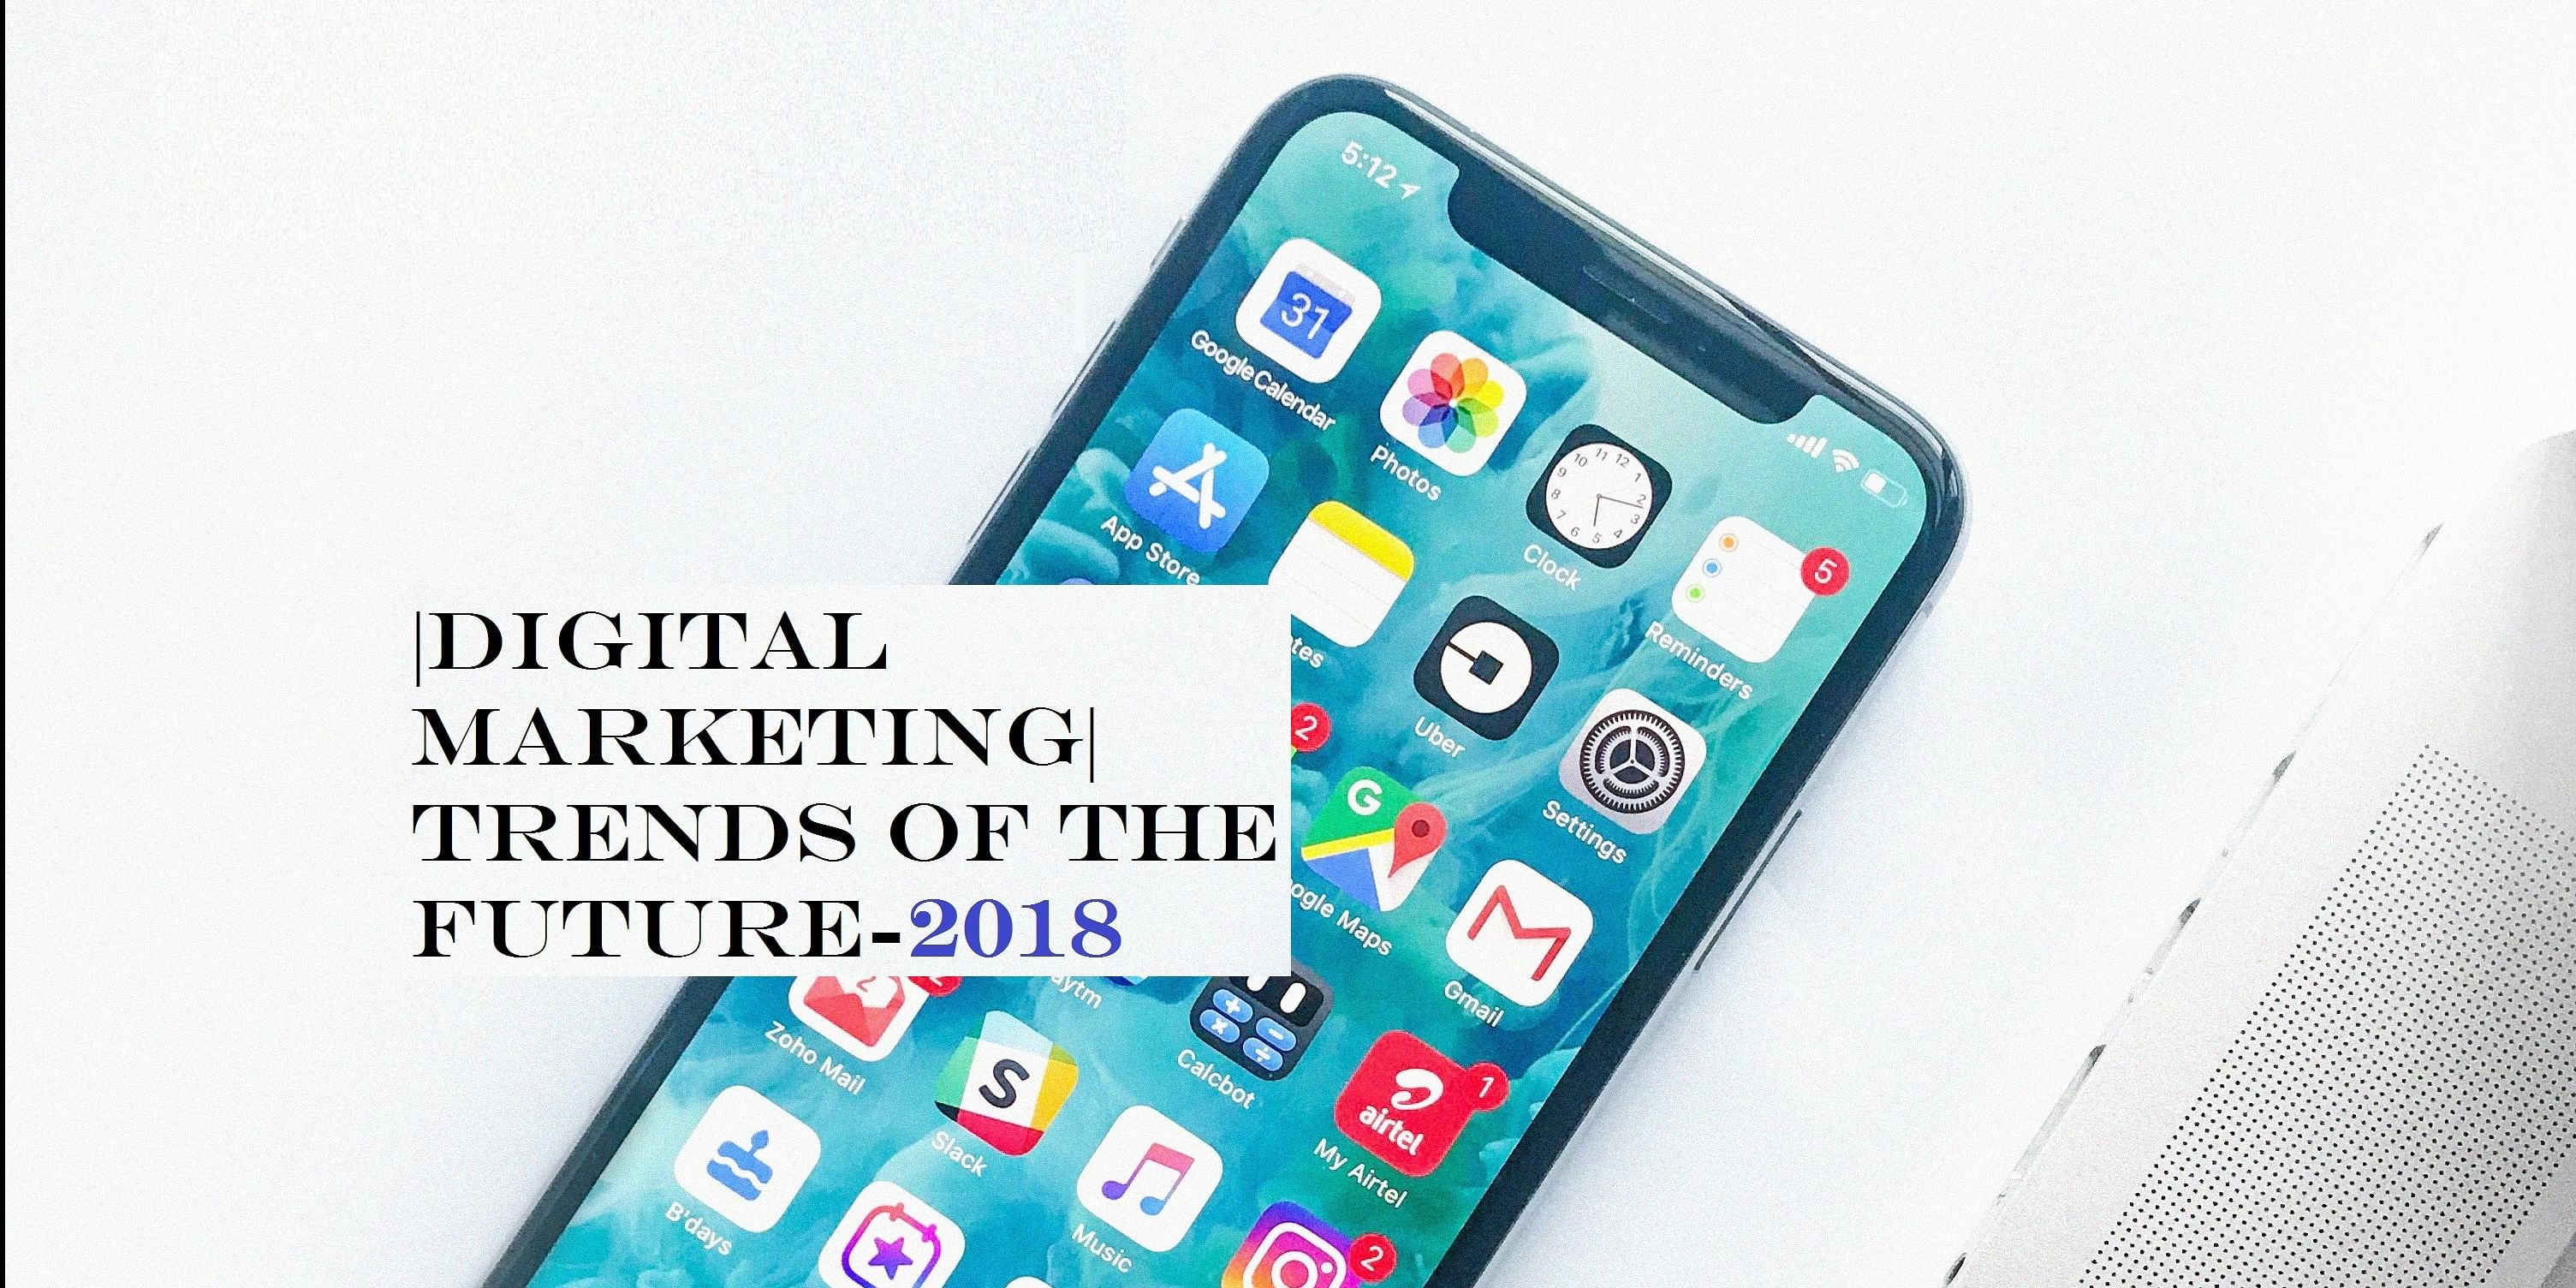 Digital Marketing Trends-2018